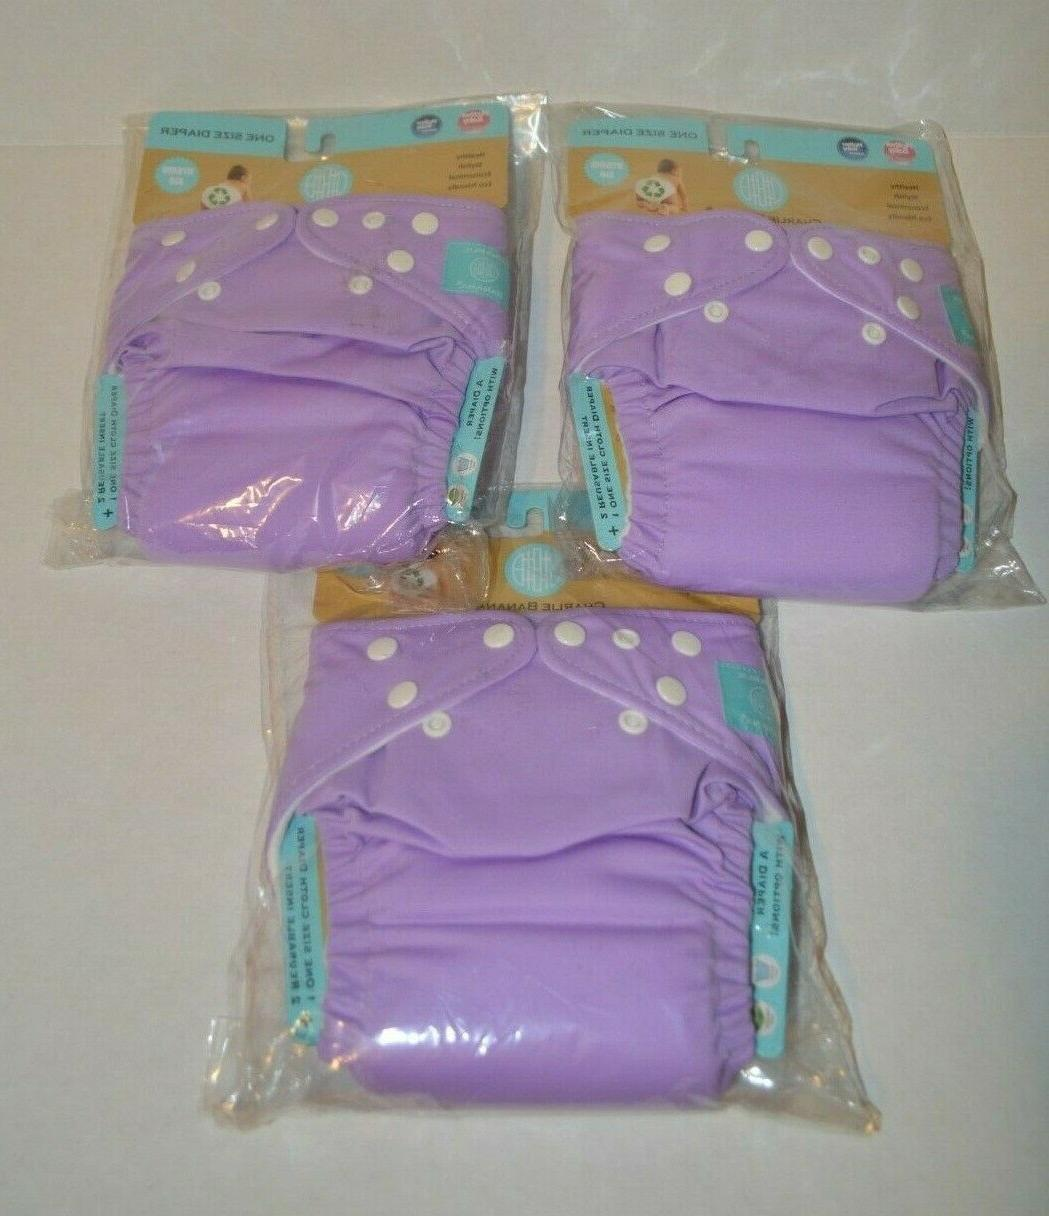 3 diapers 6 inserts unisex lavender one